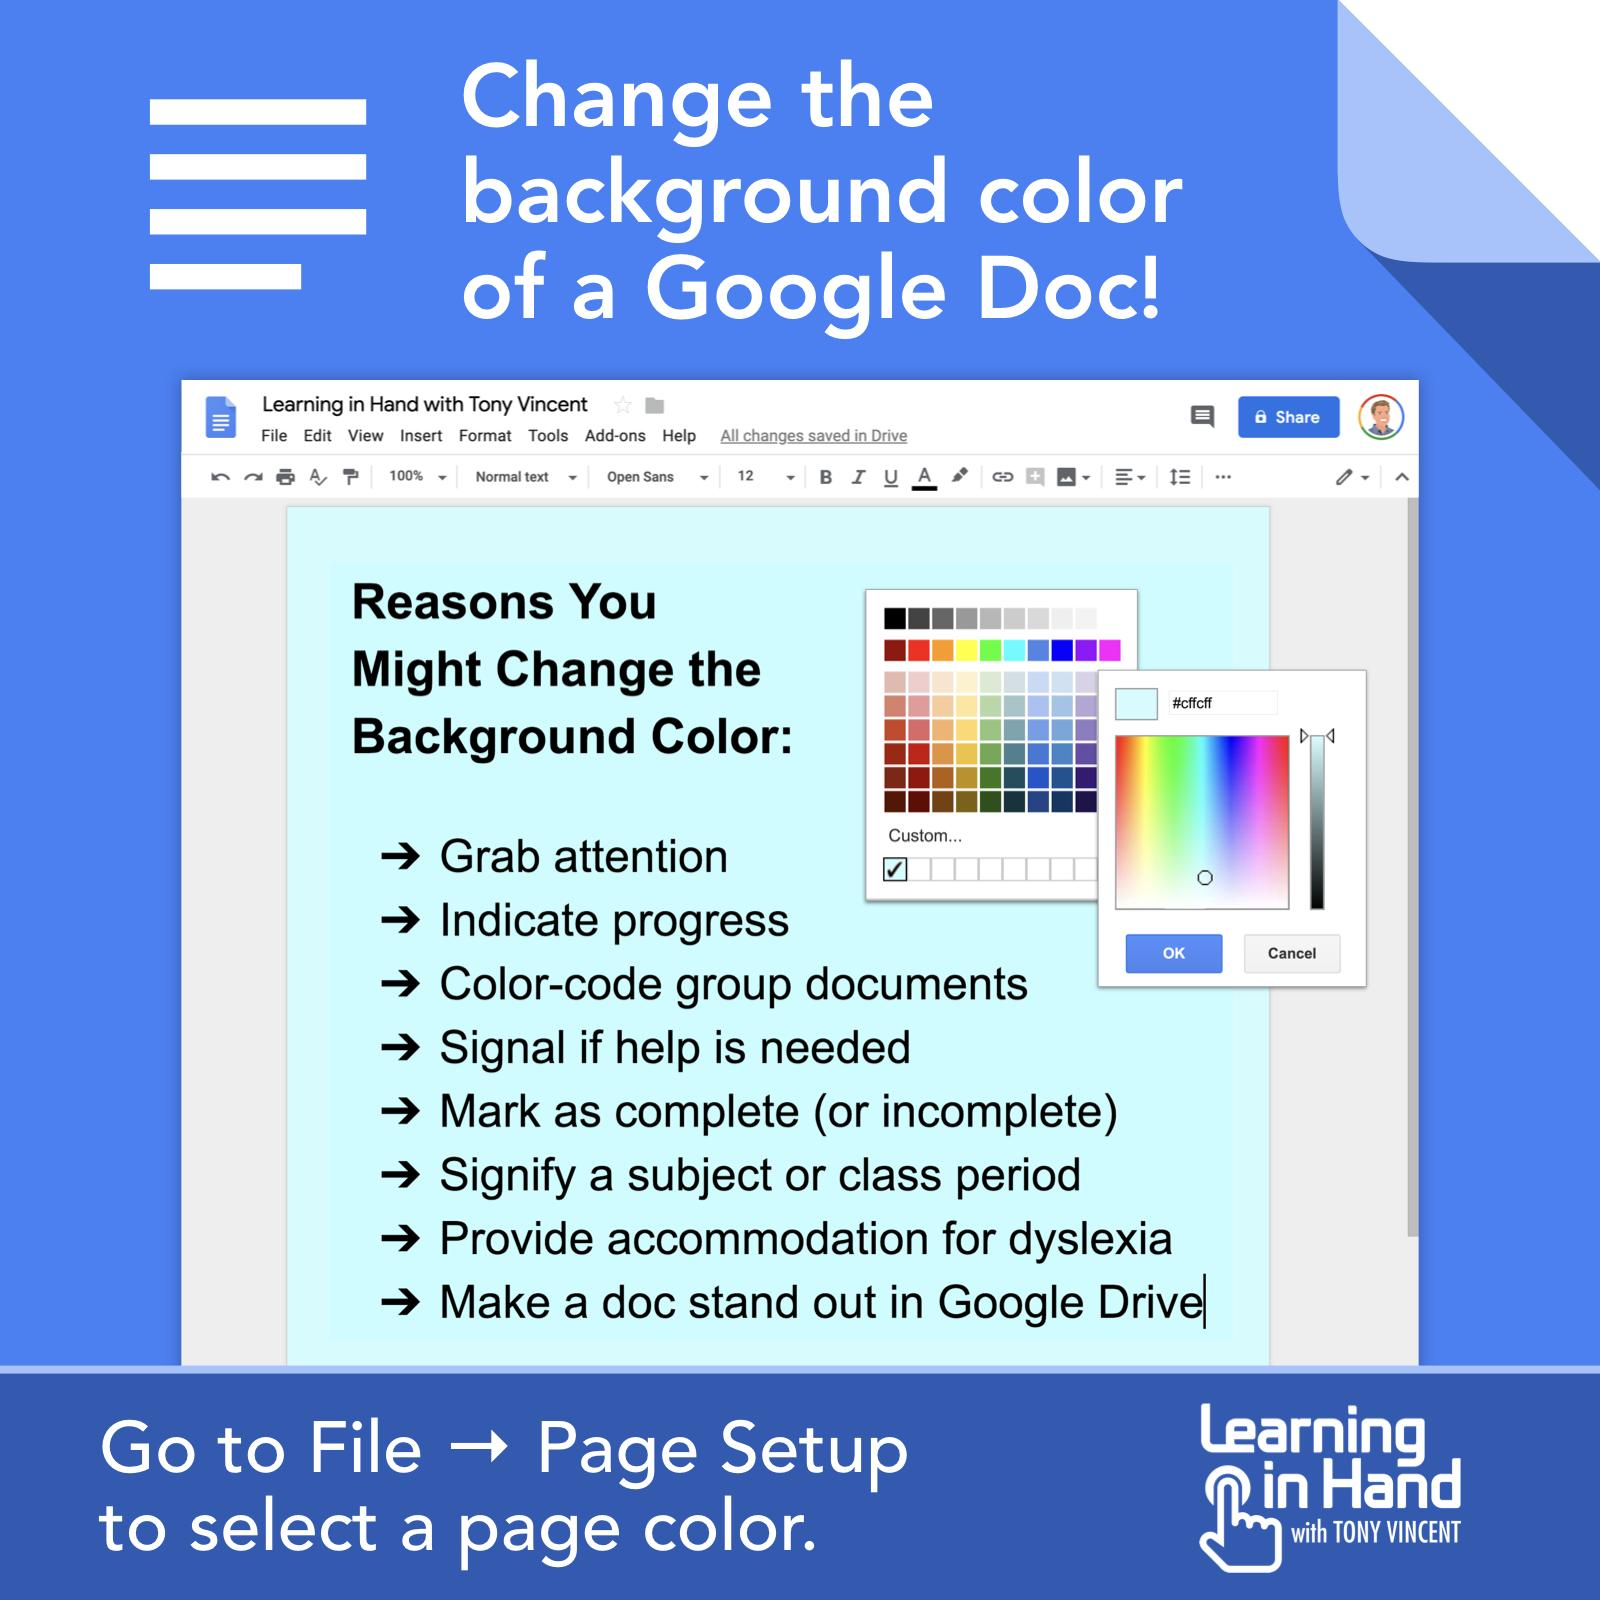 🎨 There are some good reasons teachers and students might change the background color of a Google Doc... https://t.co/5ZQaigqpNX